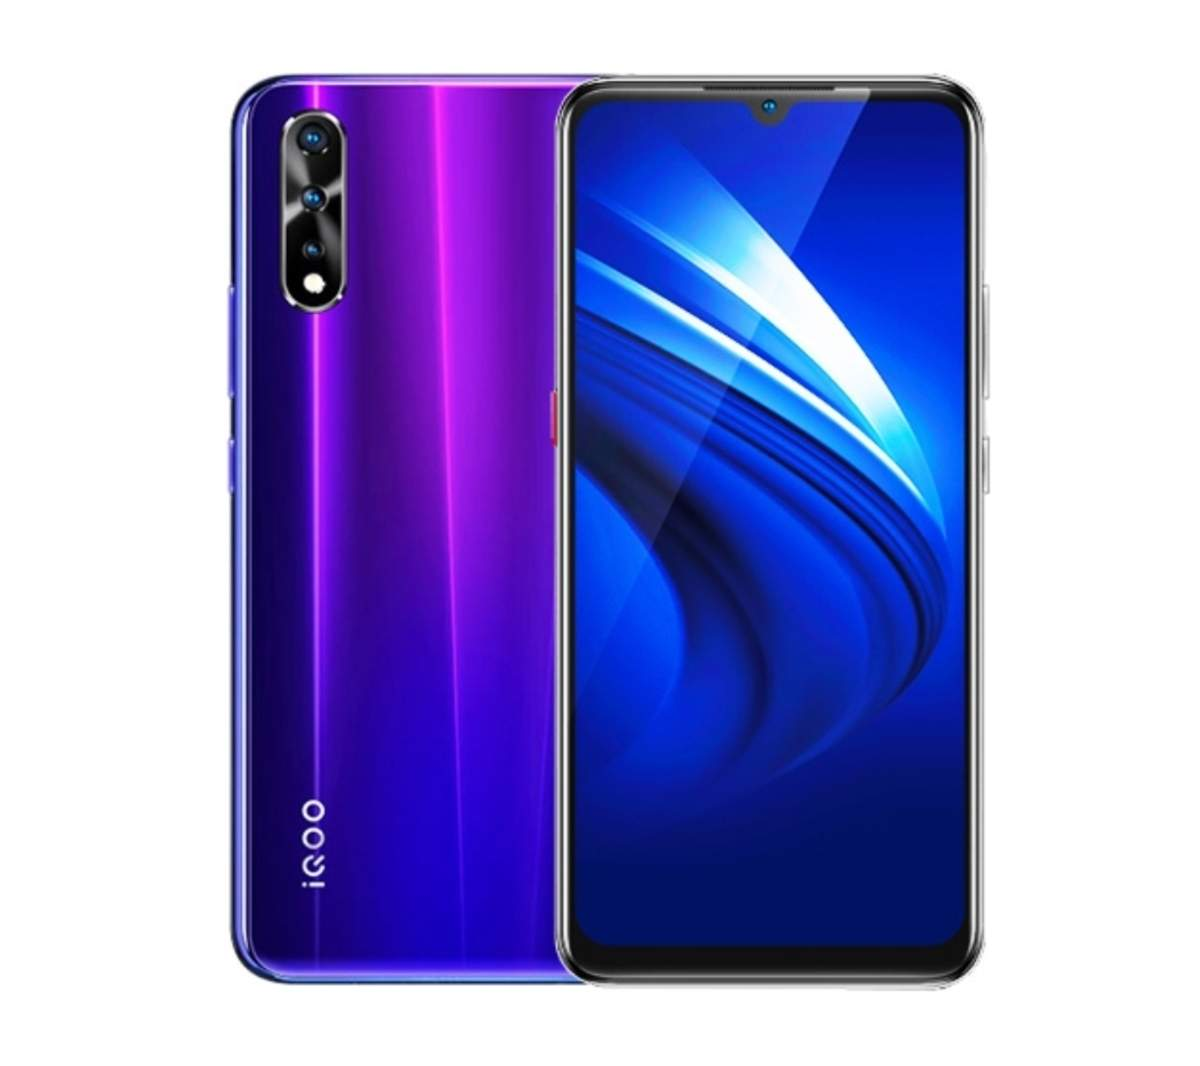 vivo iqoo neo price in Nigeria, vivo iqoo neo, vivo iqoo neo price, price of vivo iqoo neo in Nigeria, how much is vivo iqoo neo in Nigeria, vivo iqoo neo specs and price in Nigeria, vivo iqoo neo specs, iqoo neo vivo in Nigeria, vivo iqoo neo specification, nigerian price of vivo iqoo neo, vivo iqoo neo and price in Nigeria, vivo iqoo neo in Nigeria